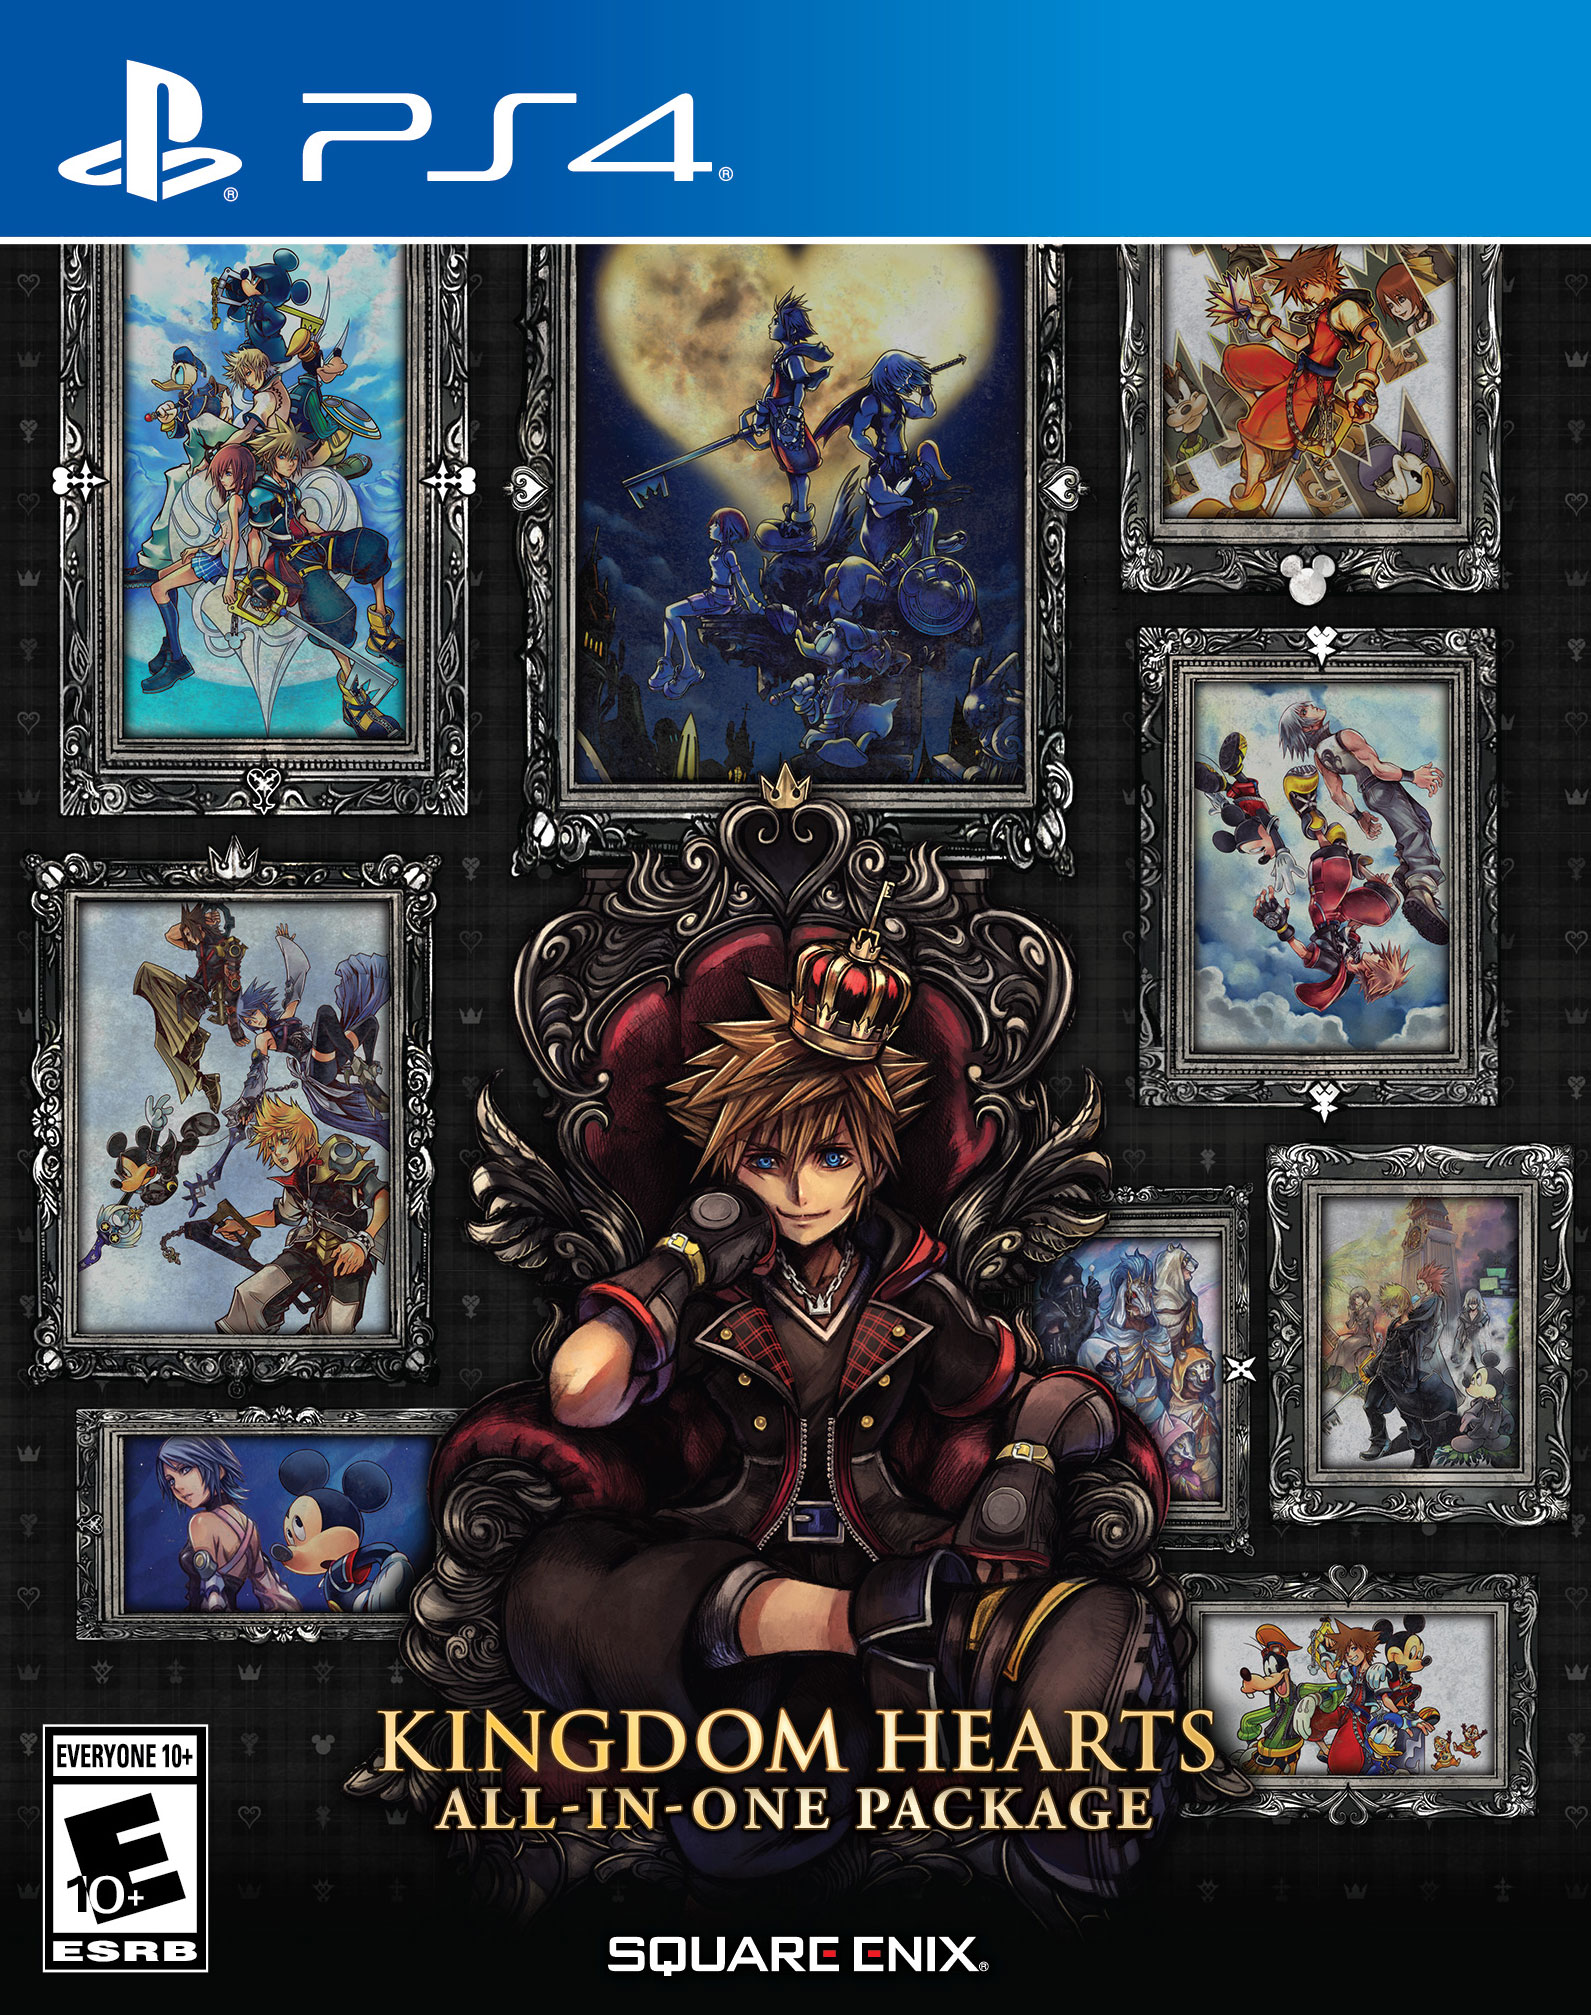 Kingdom Hearts All In One Package Physical Edition Coming To Ps4 On March 17 In North America Gematsu